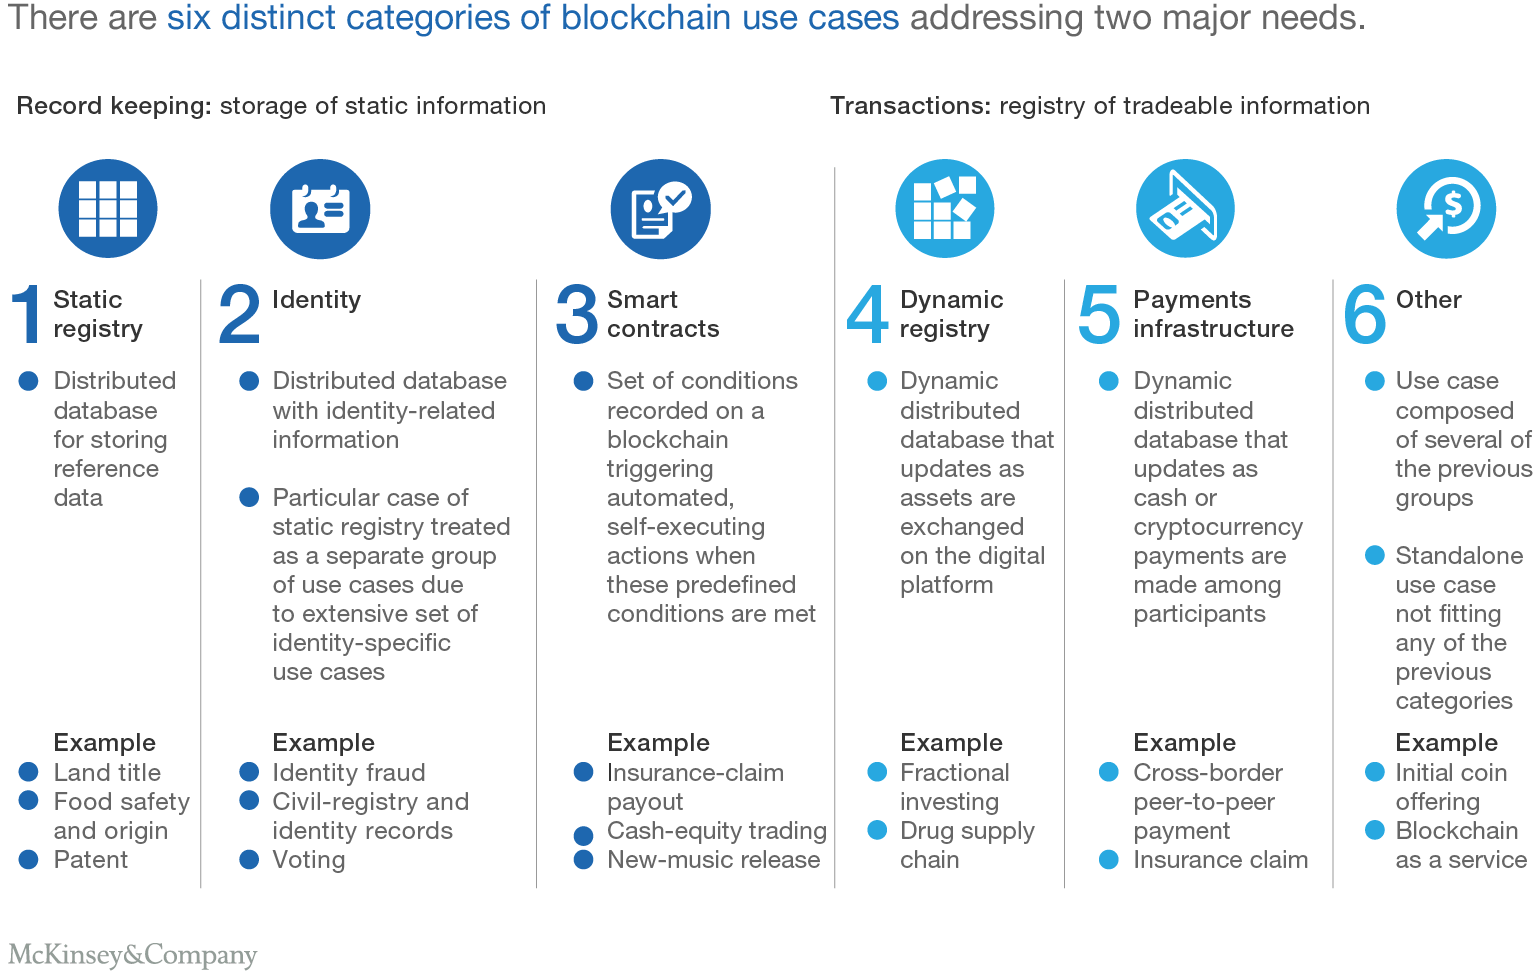 There are six distinct categories of blockchain use cases addressing two major needs.